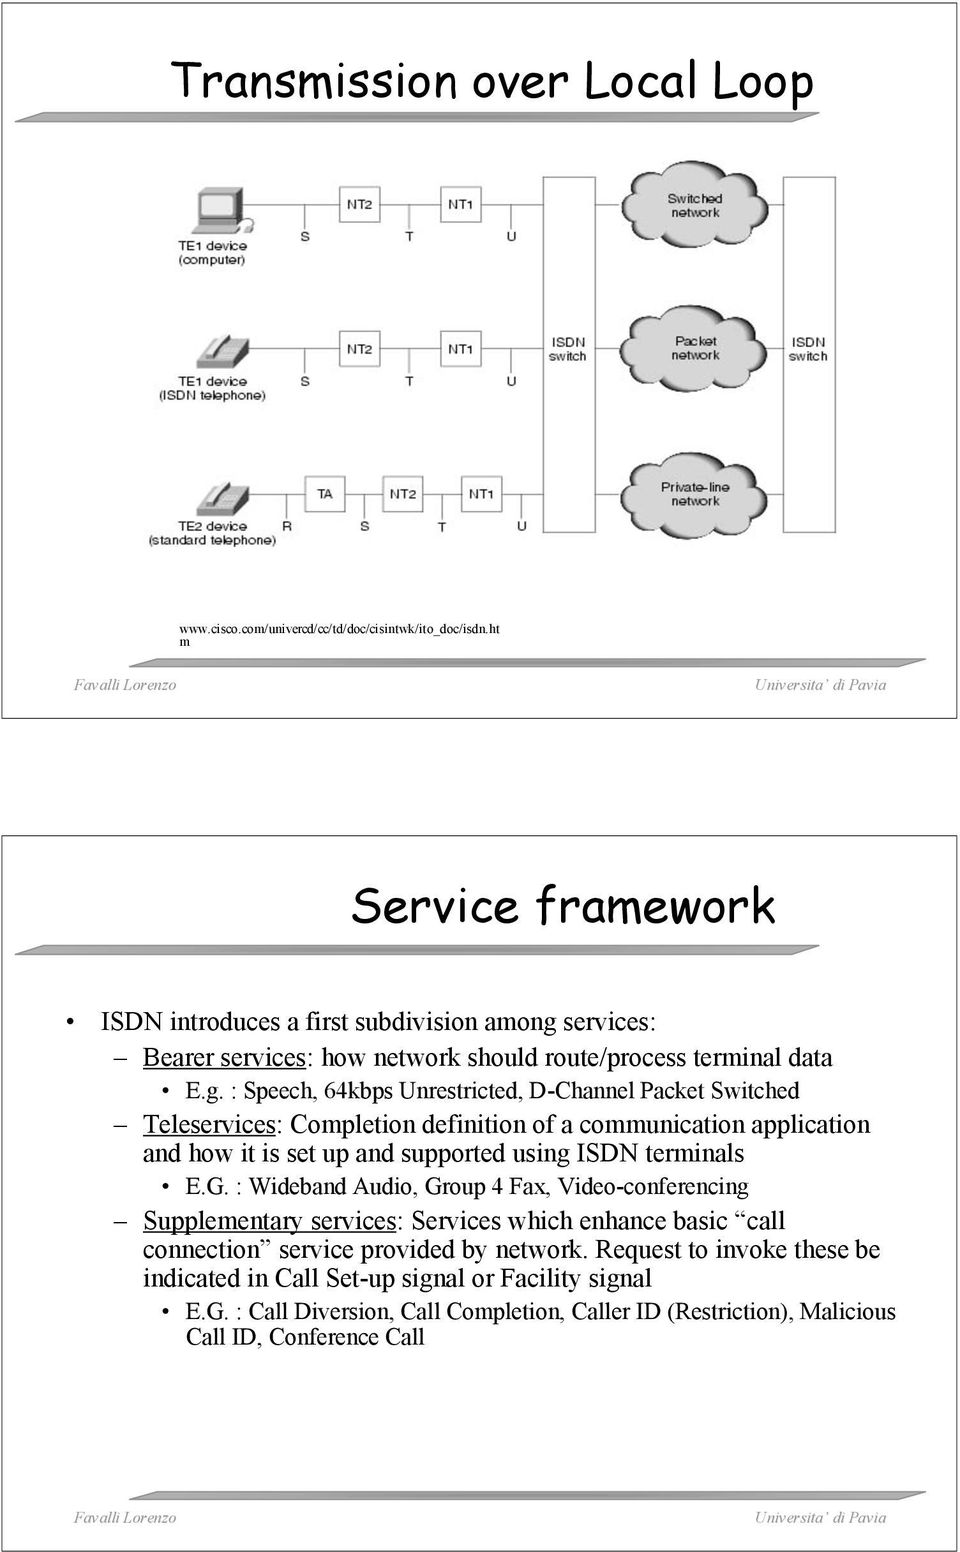 services: Bearer services: how network should route/process terminal data E.g.